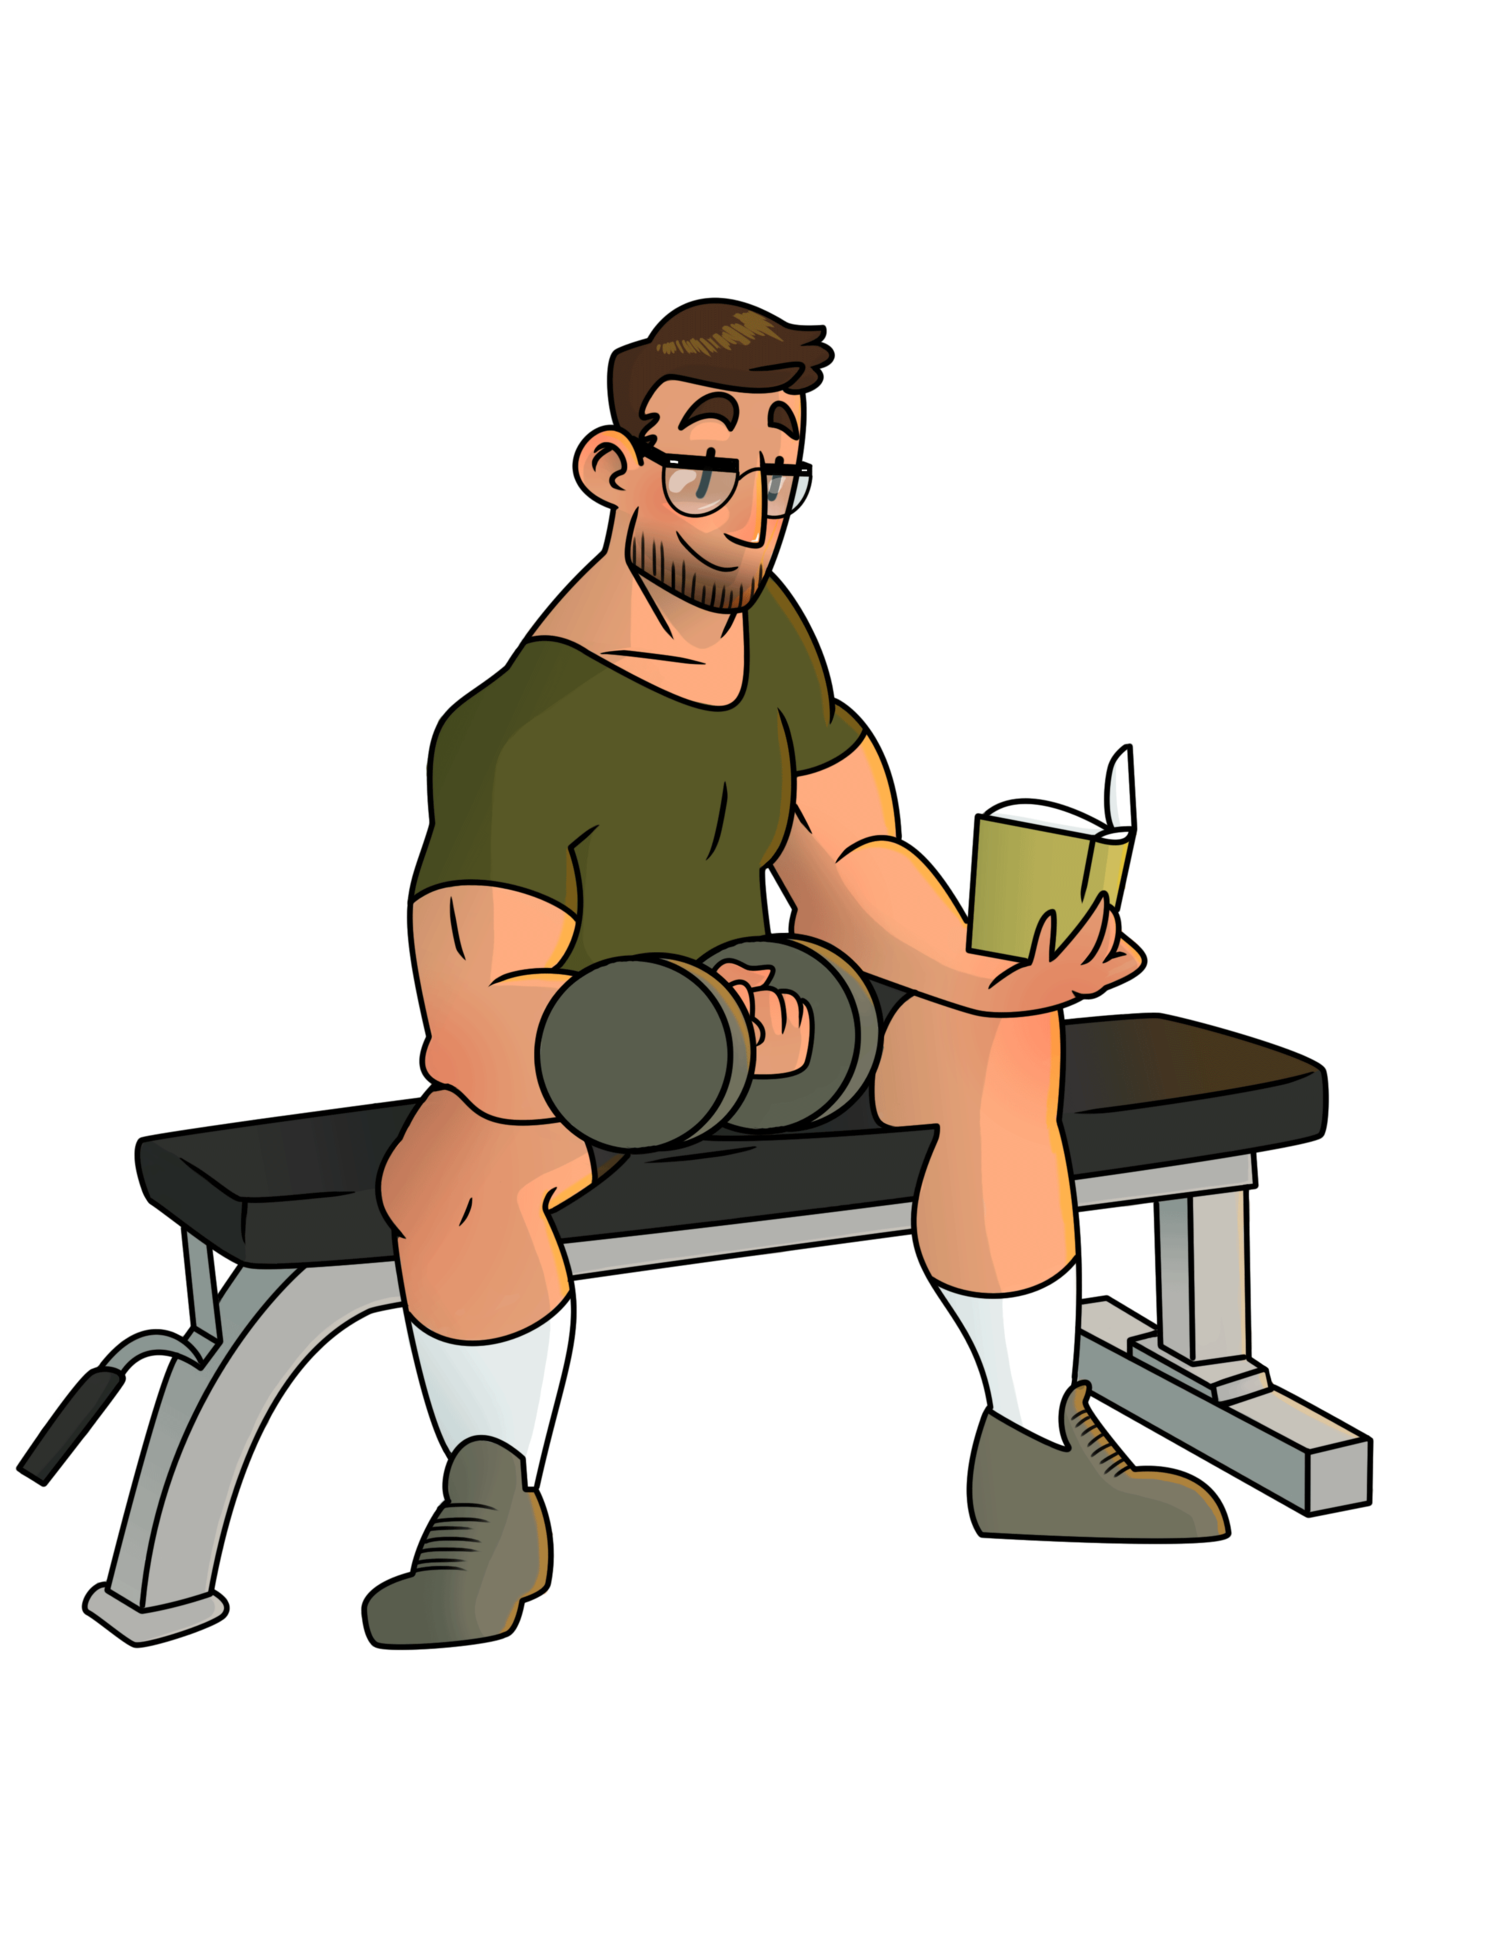 Train at the a. Gym clipart athlete